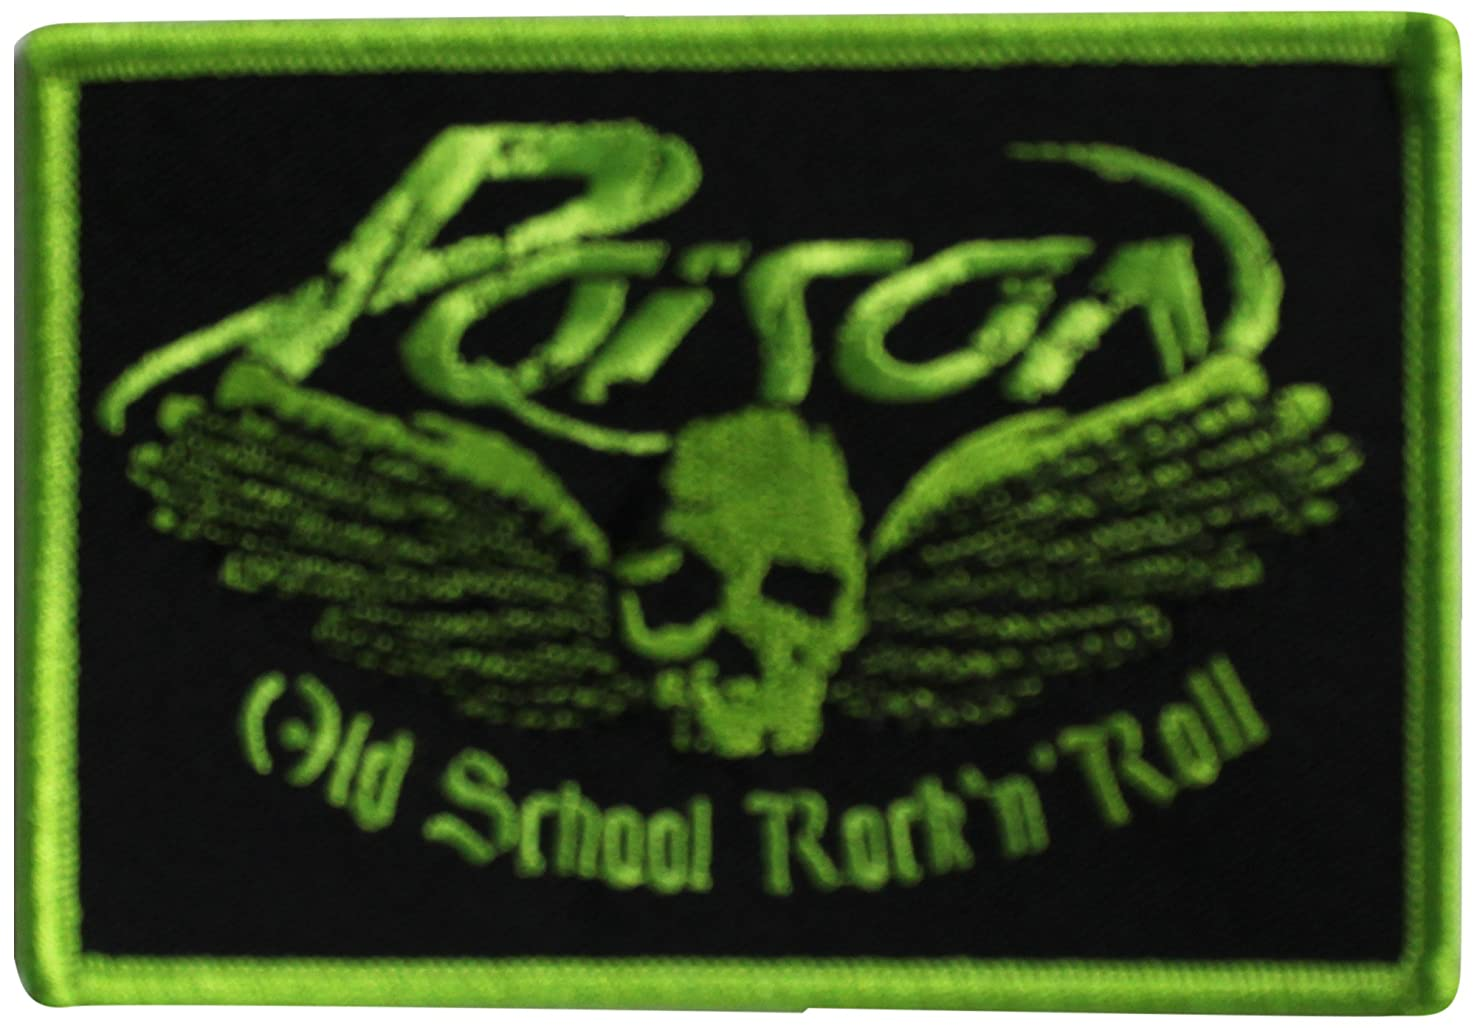 Application Poison Old School Patch